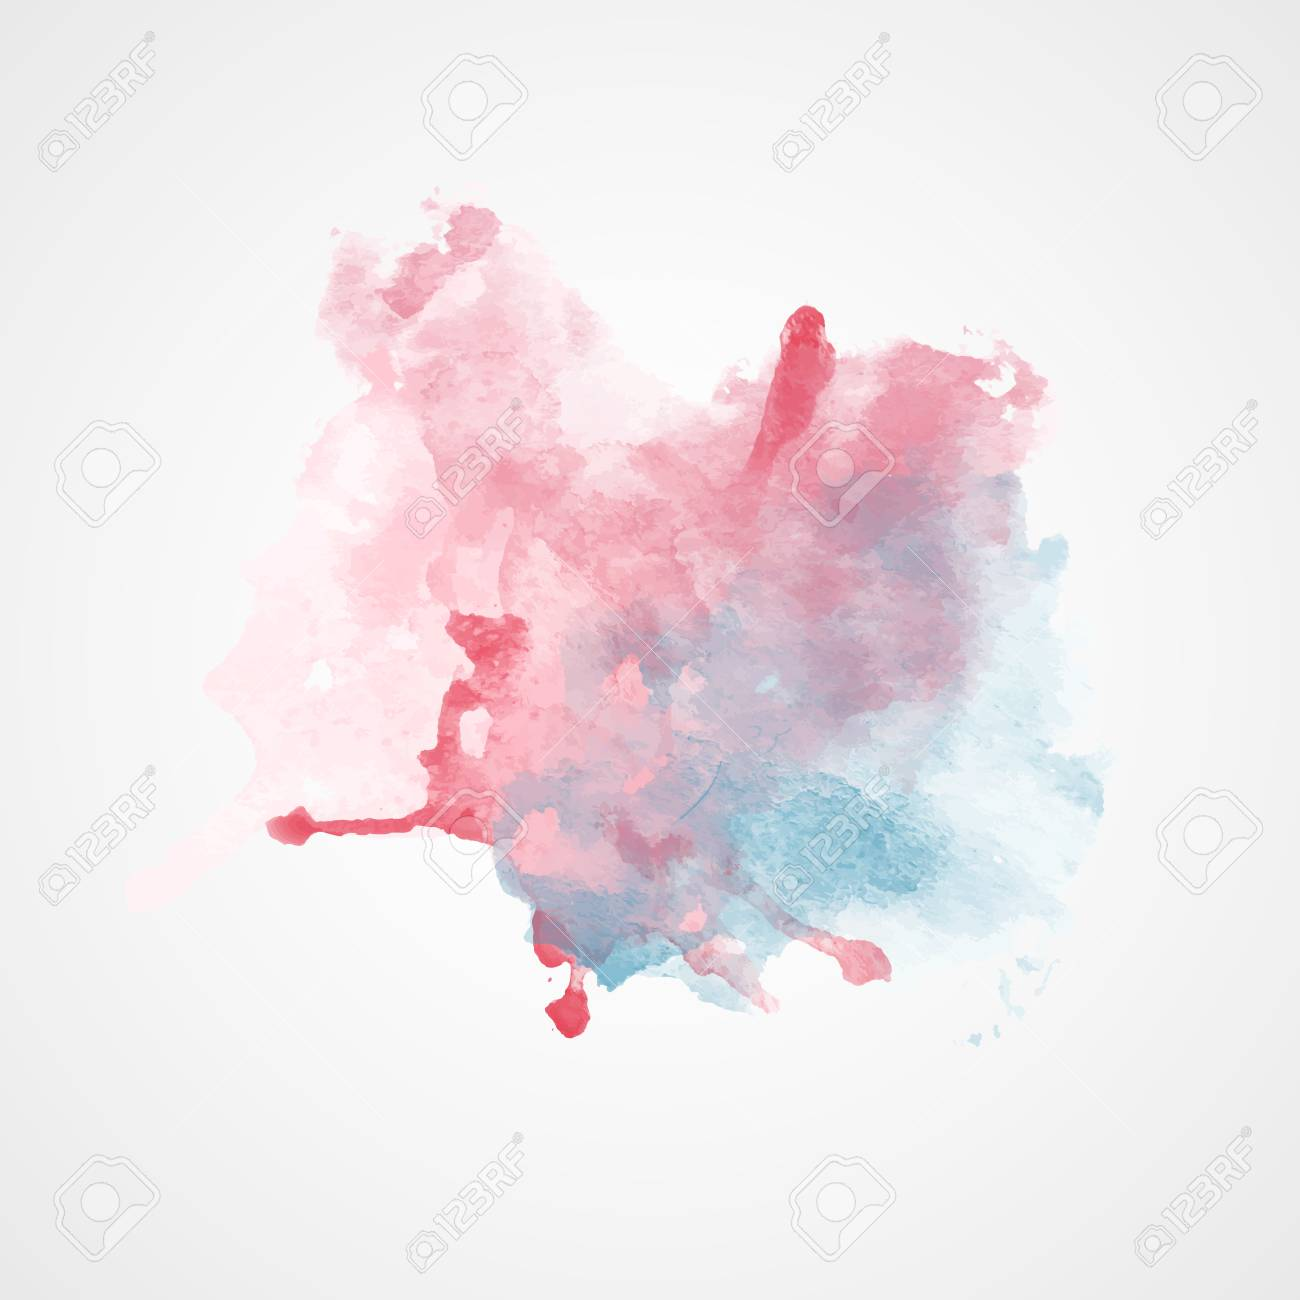 vector watercolor splash with gradient effect bright colorful grunge blob fashion beauty posters and banners graphic design red and blue colors